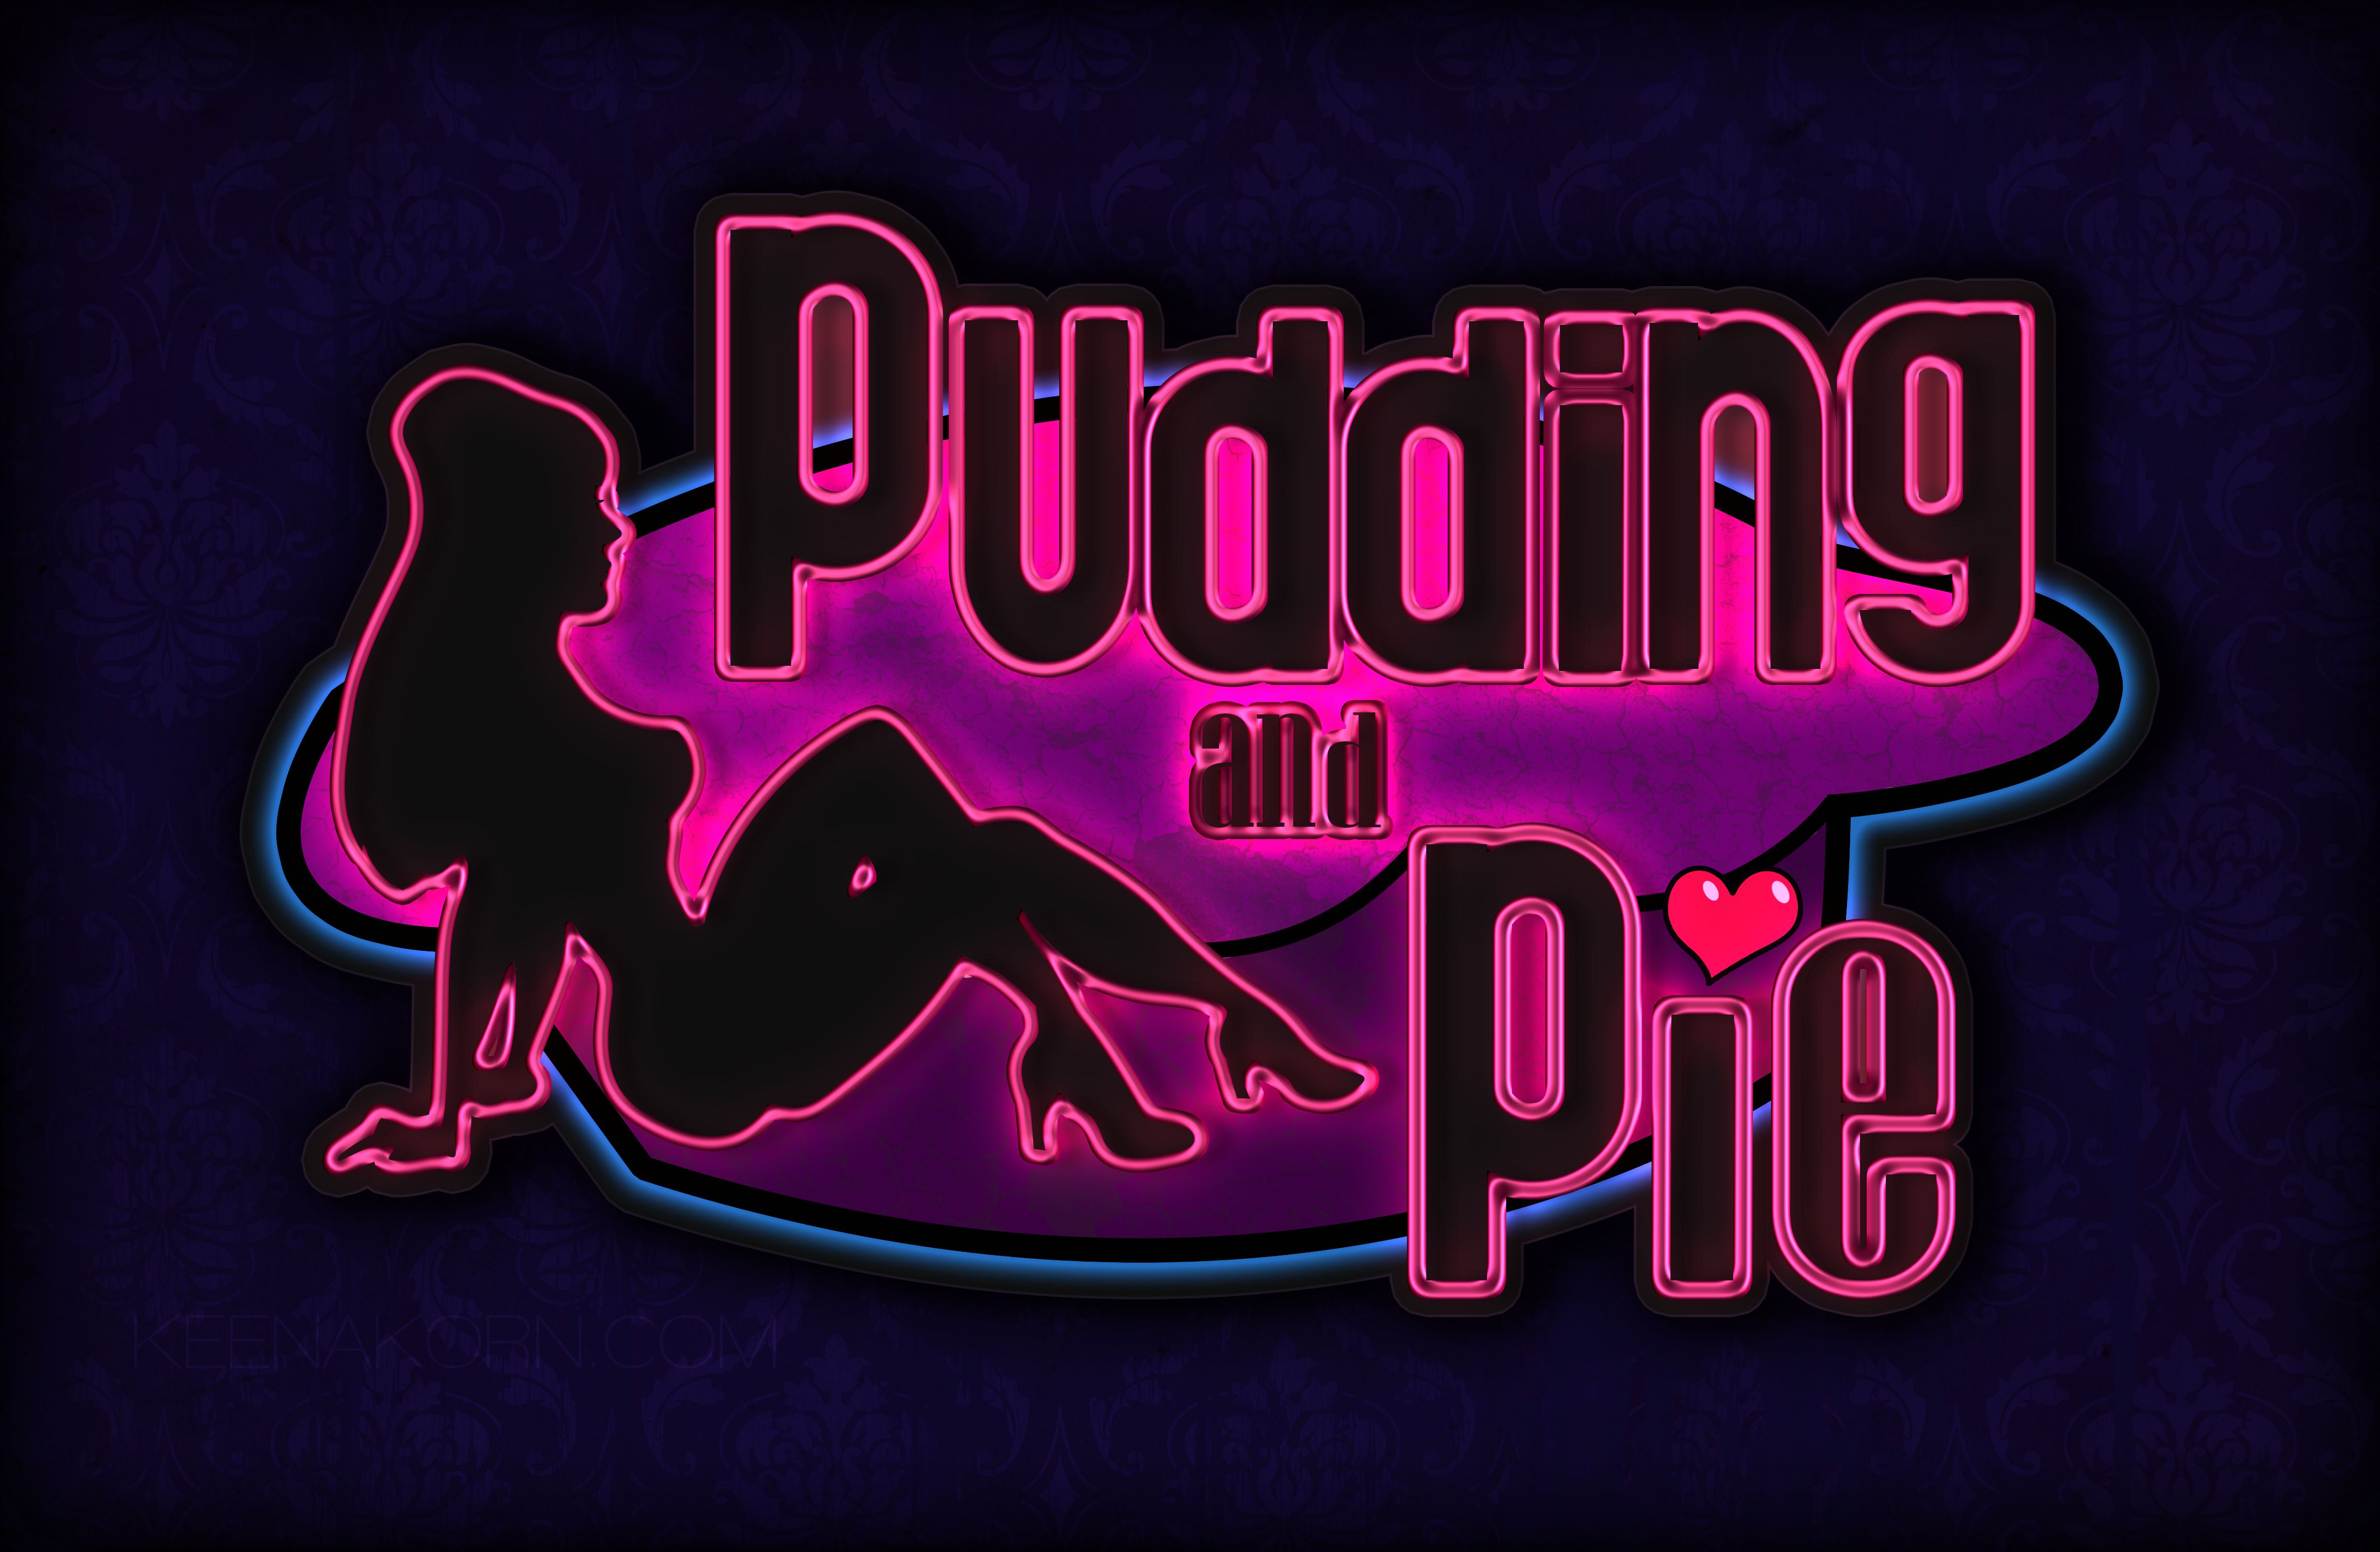 pudding and pie wolf among us wallpaper designed by keena wolff graphic designer las cruces